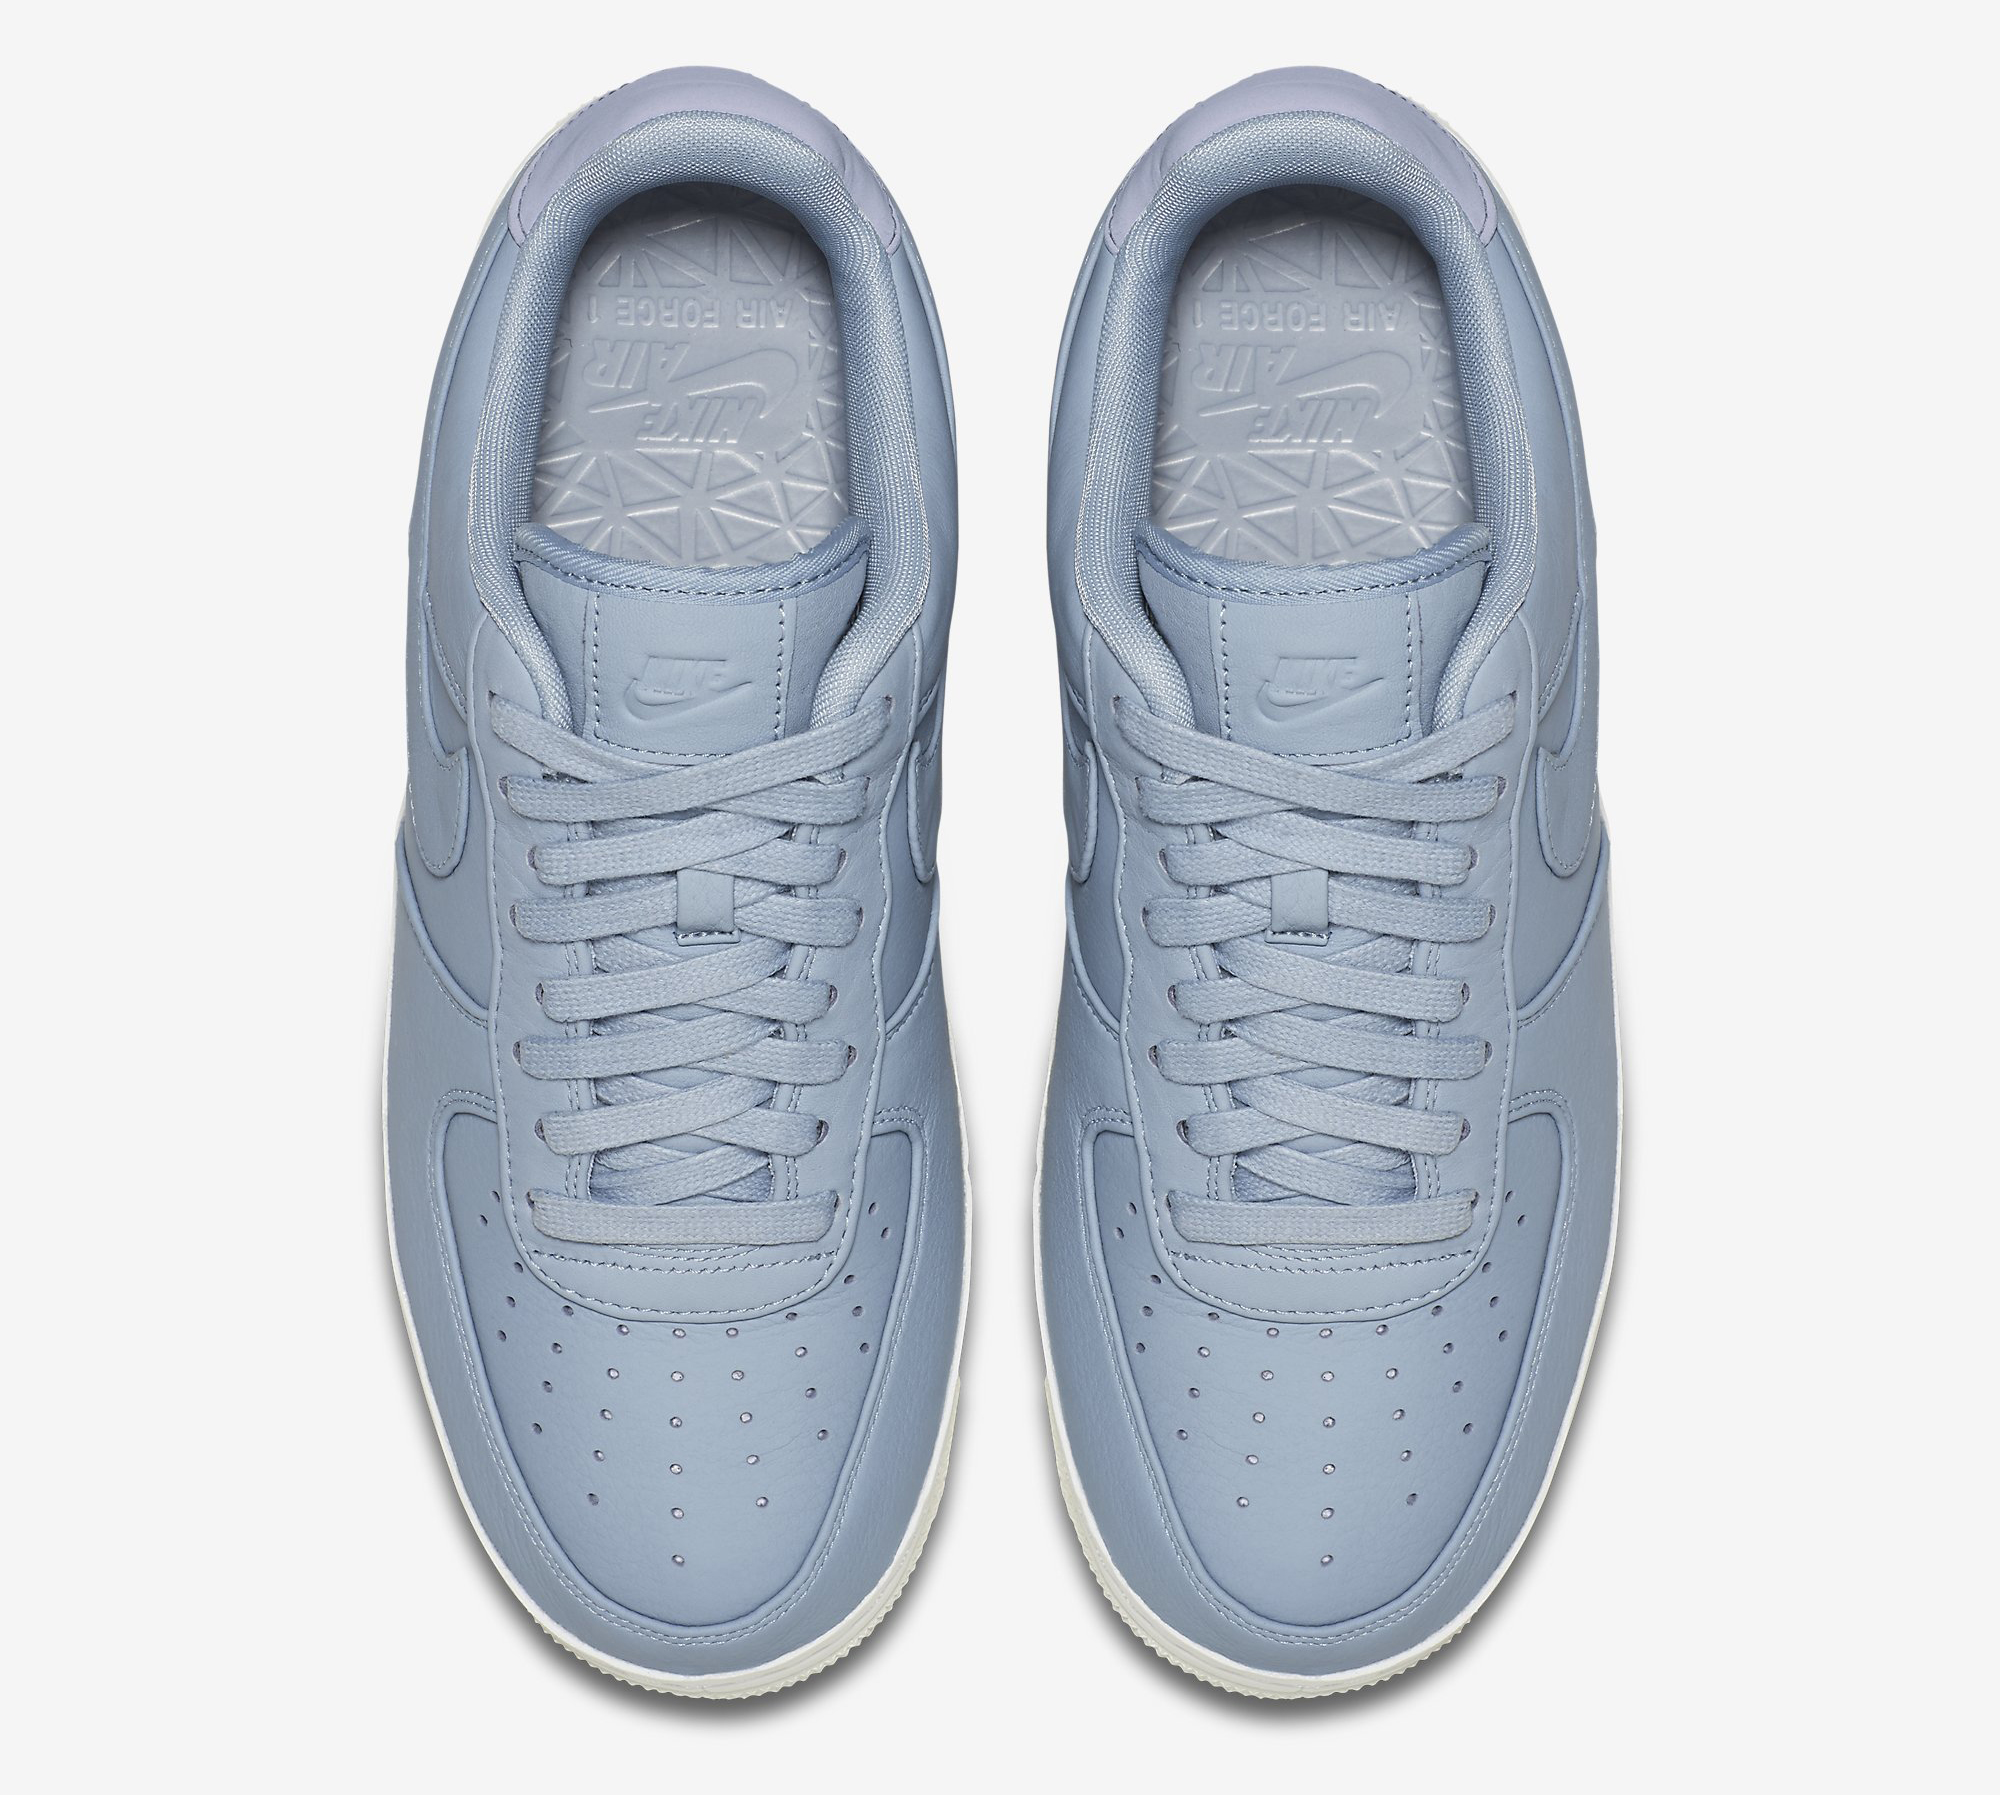 timeless design d2d9f a07fd Image via Nike nikelab-air-force-1-low-blue-grey-905618-